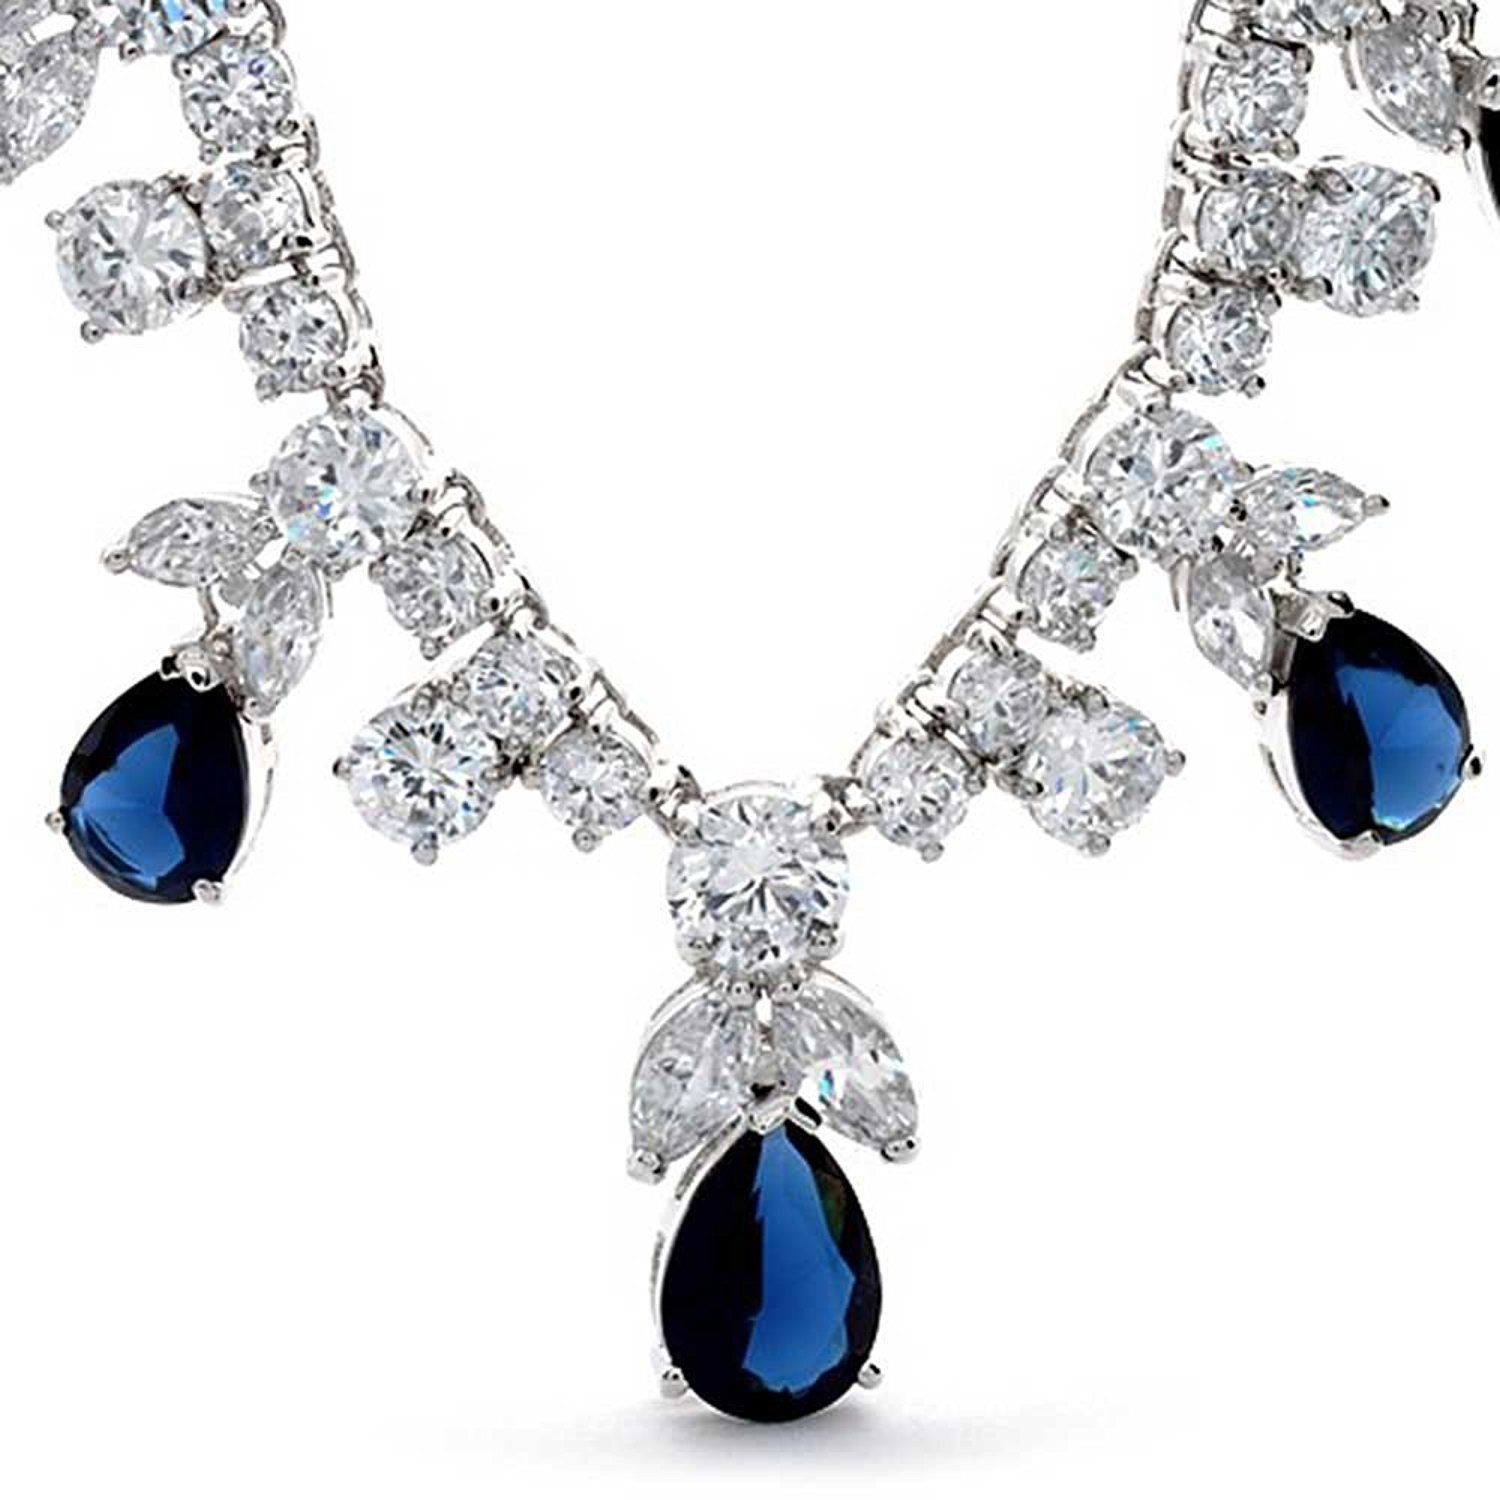 Bling Jewelry Simulated Blue Sapphire Teardrop Clear CZ Jewelry Set Rhodium Plated xbBivak